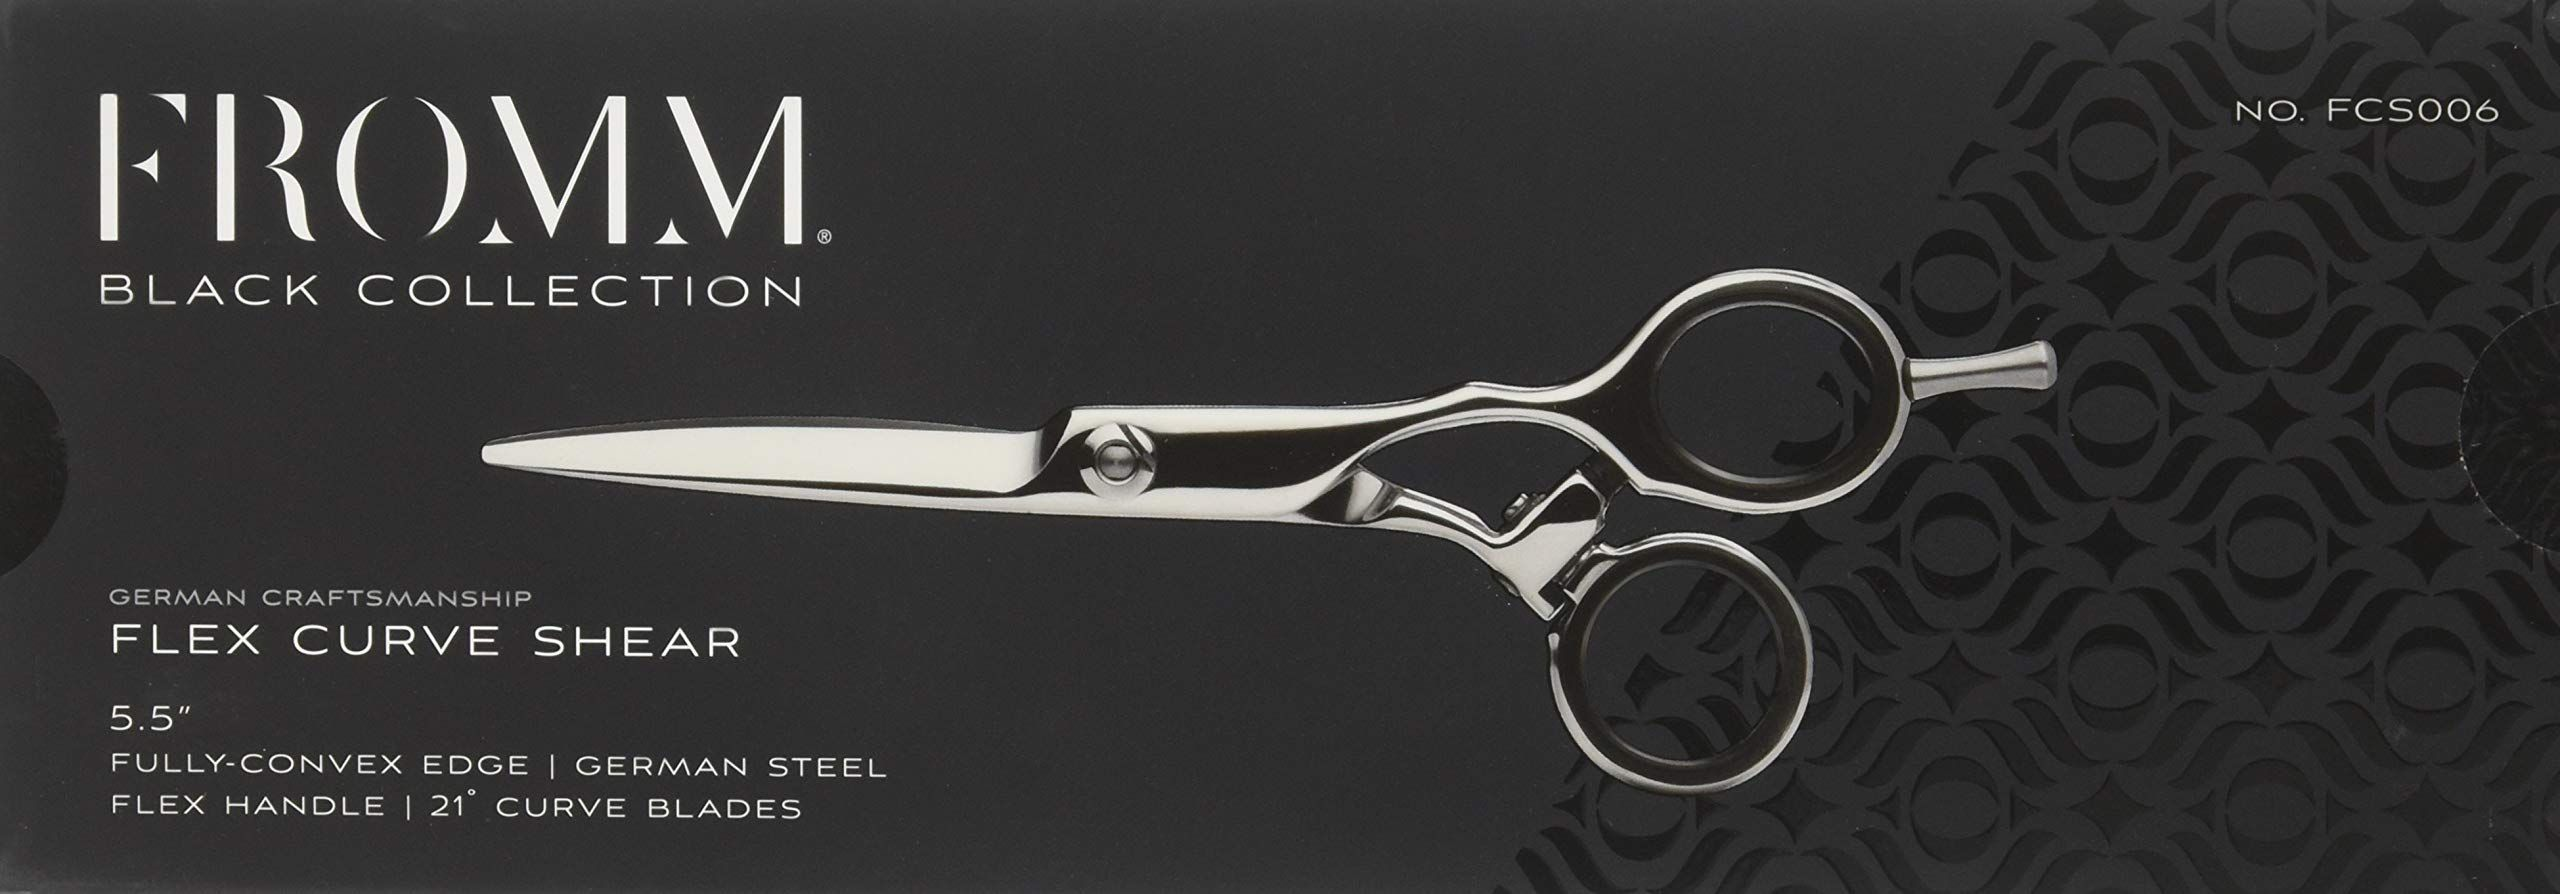 Fromm Flex Curve Shear 5.5 Black Collection >>> Click on